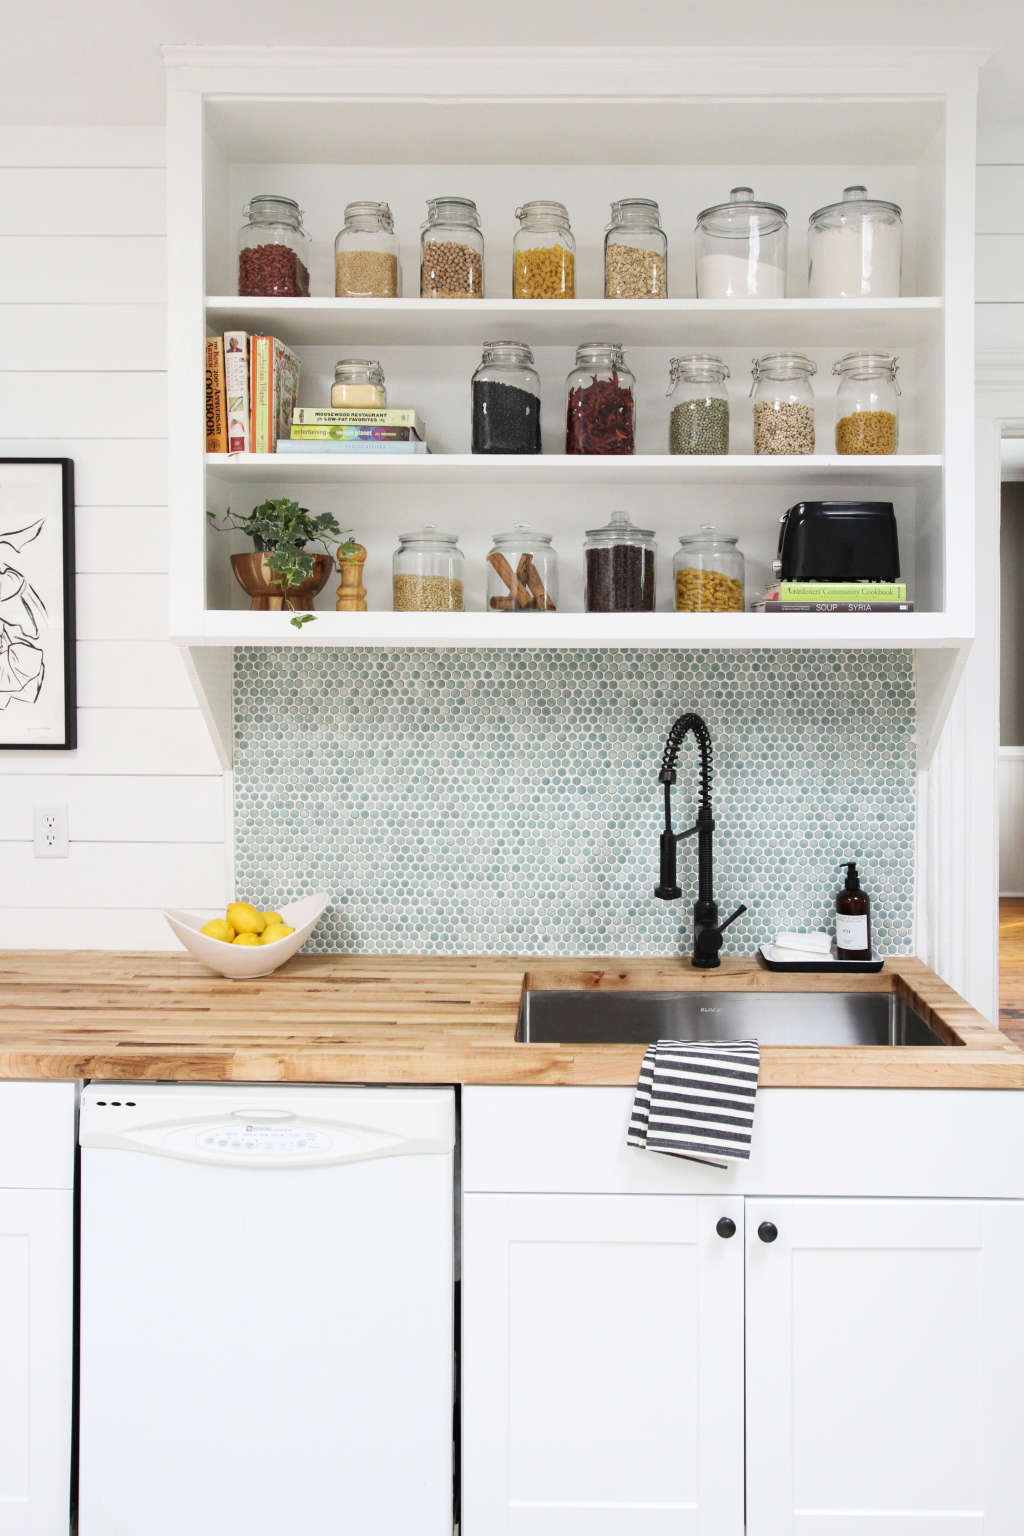 How To Grout Tile Backsplash Apartment Therapy